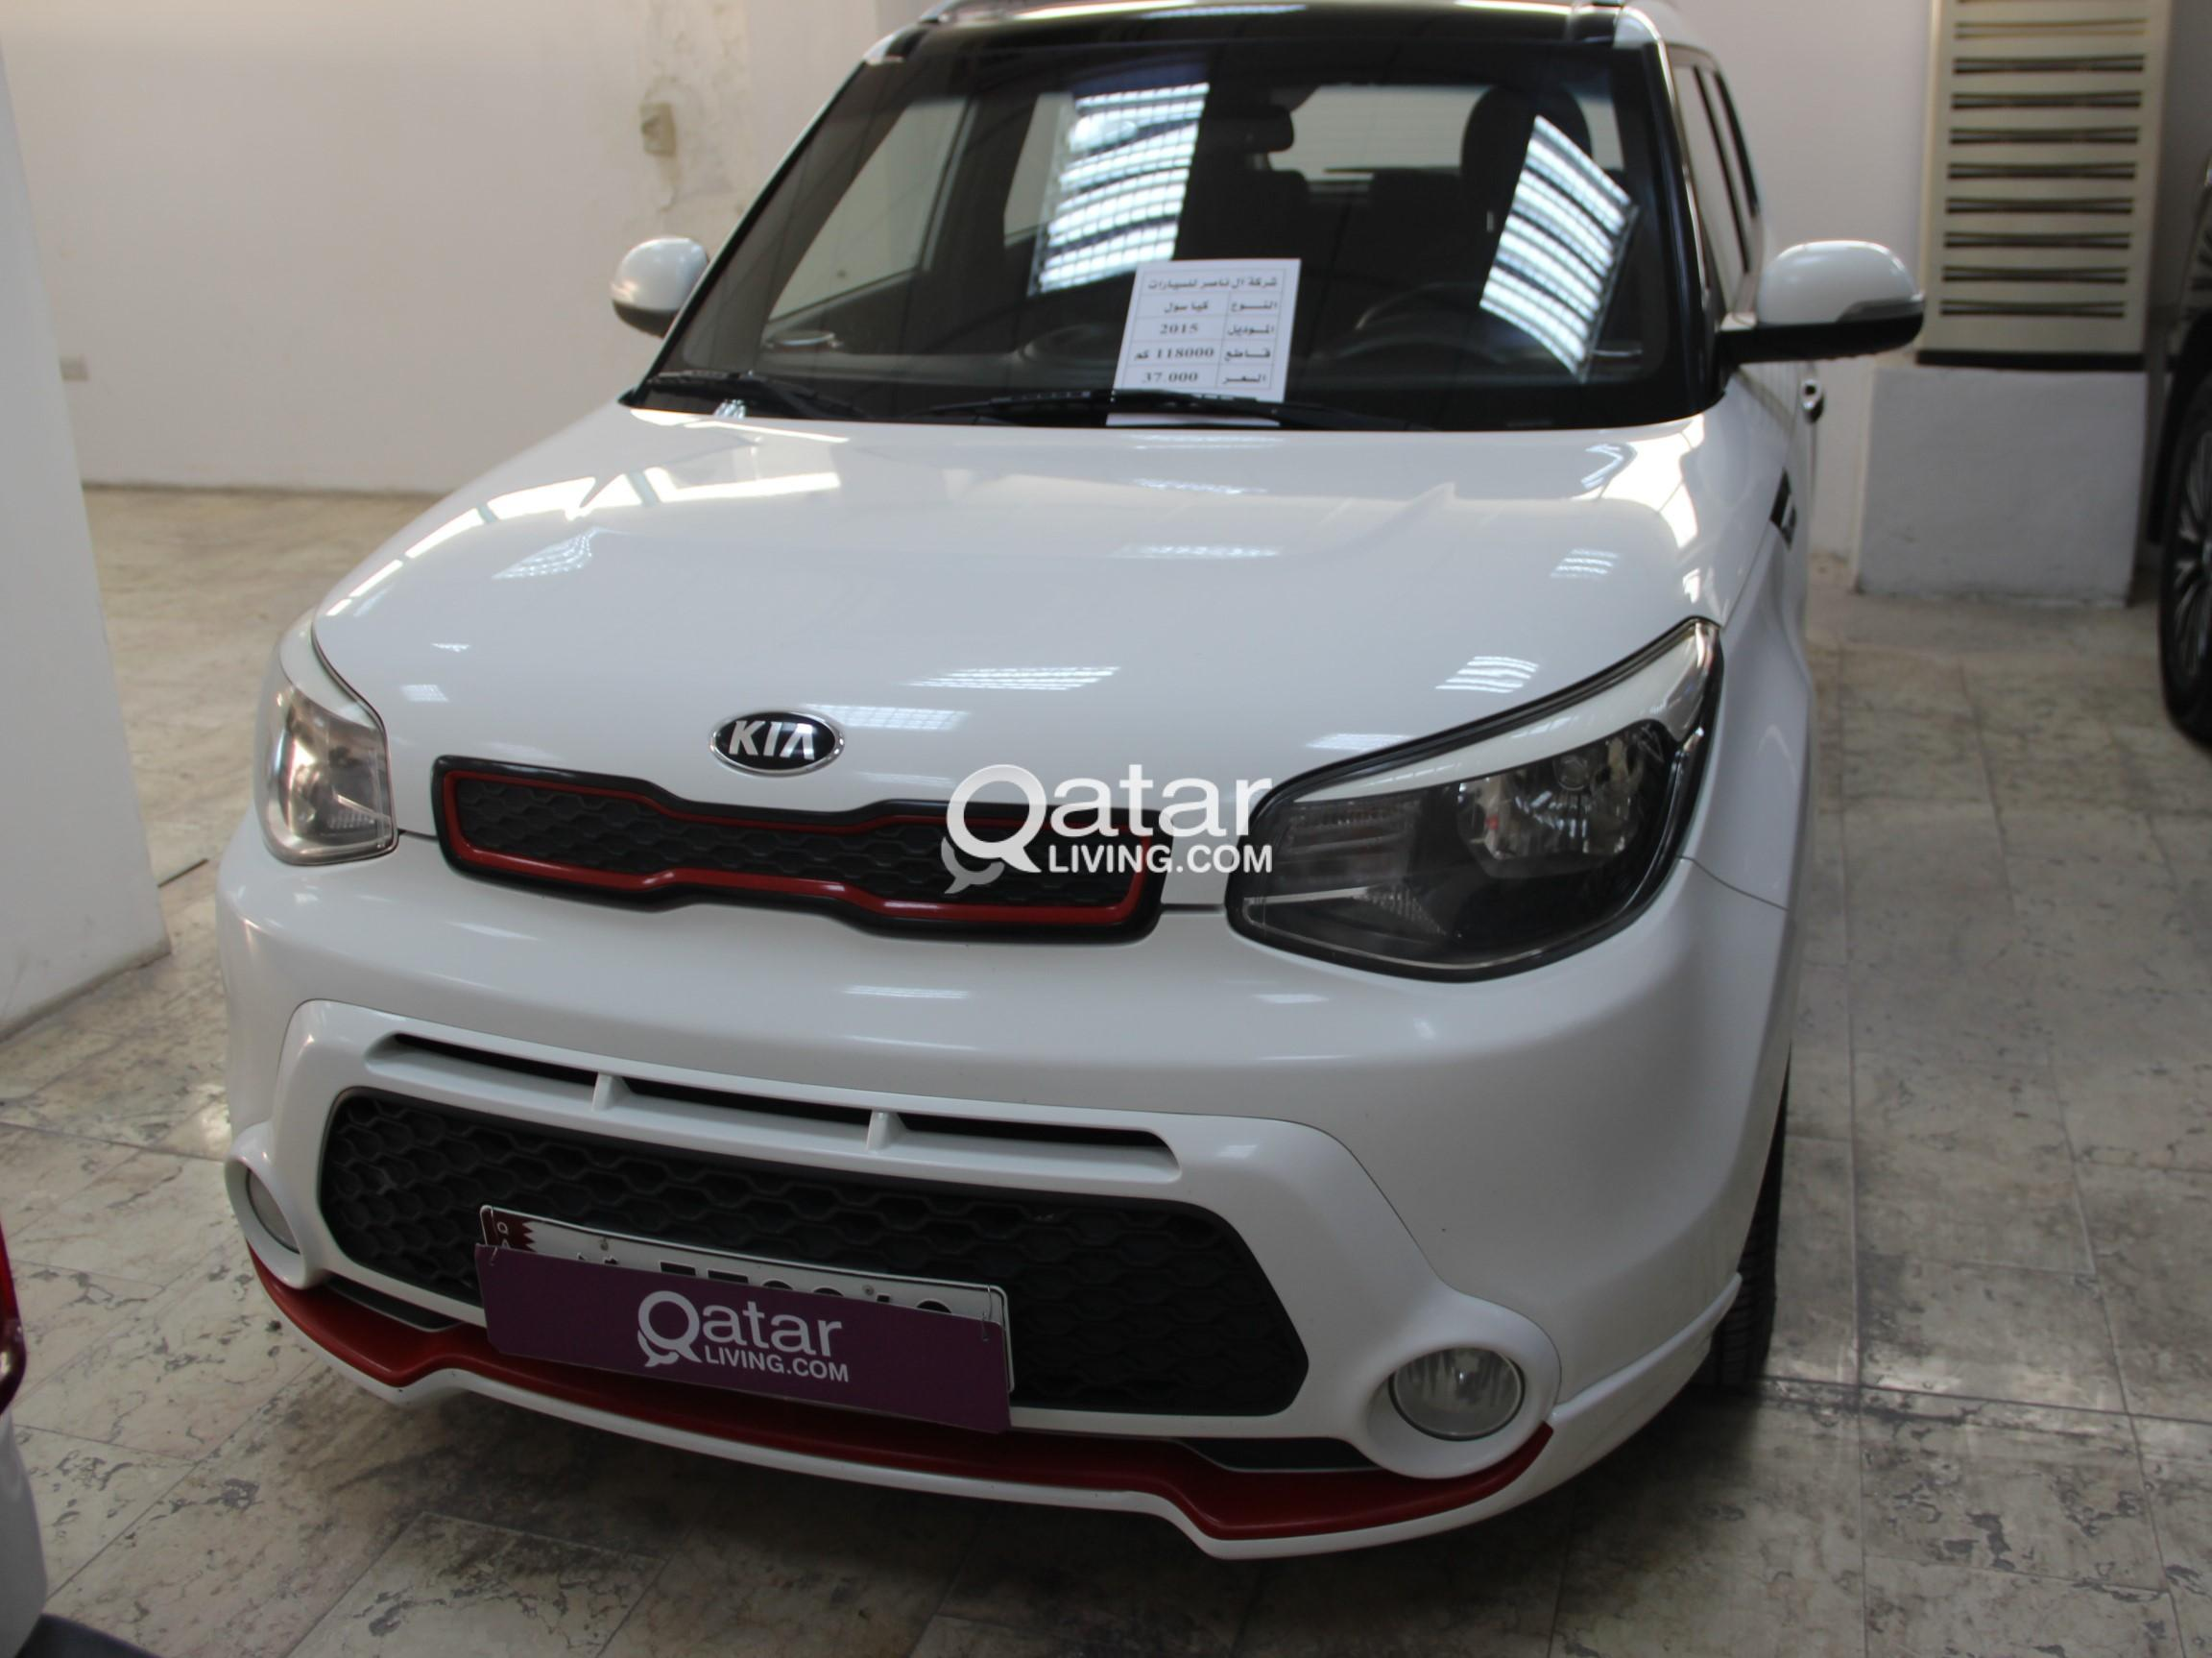 vehicles carsedan model soul img year qatar kia vehicle living information make